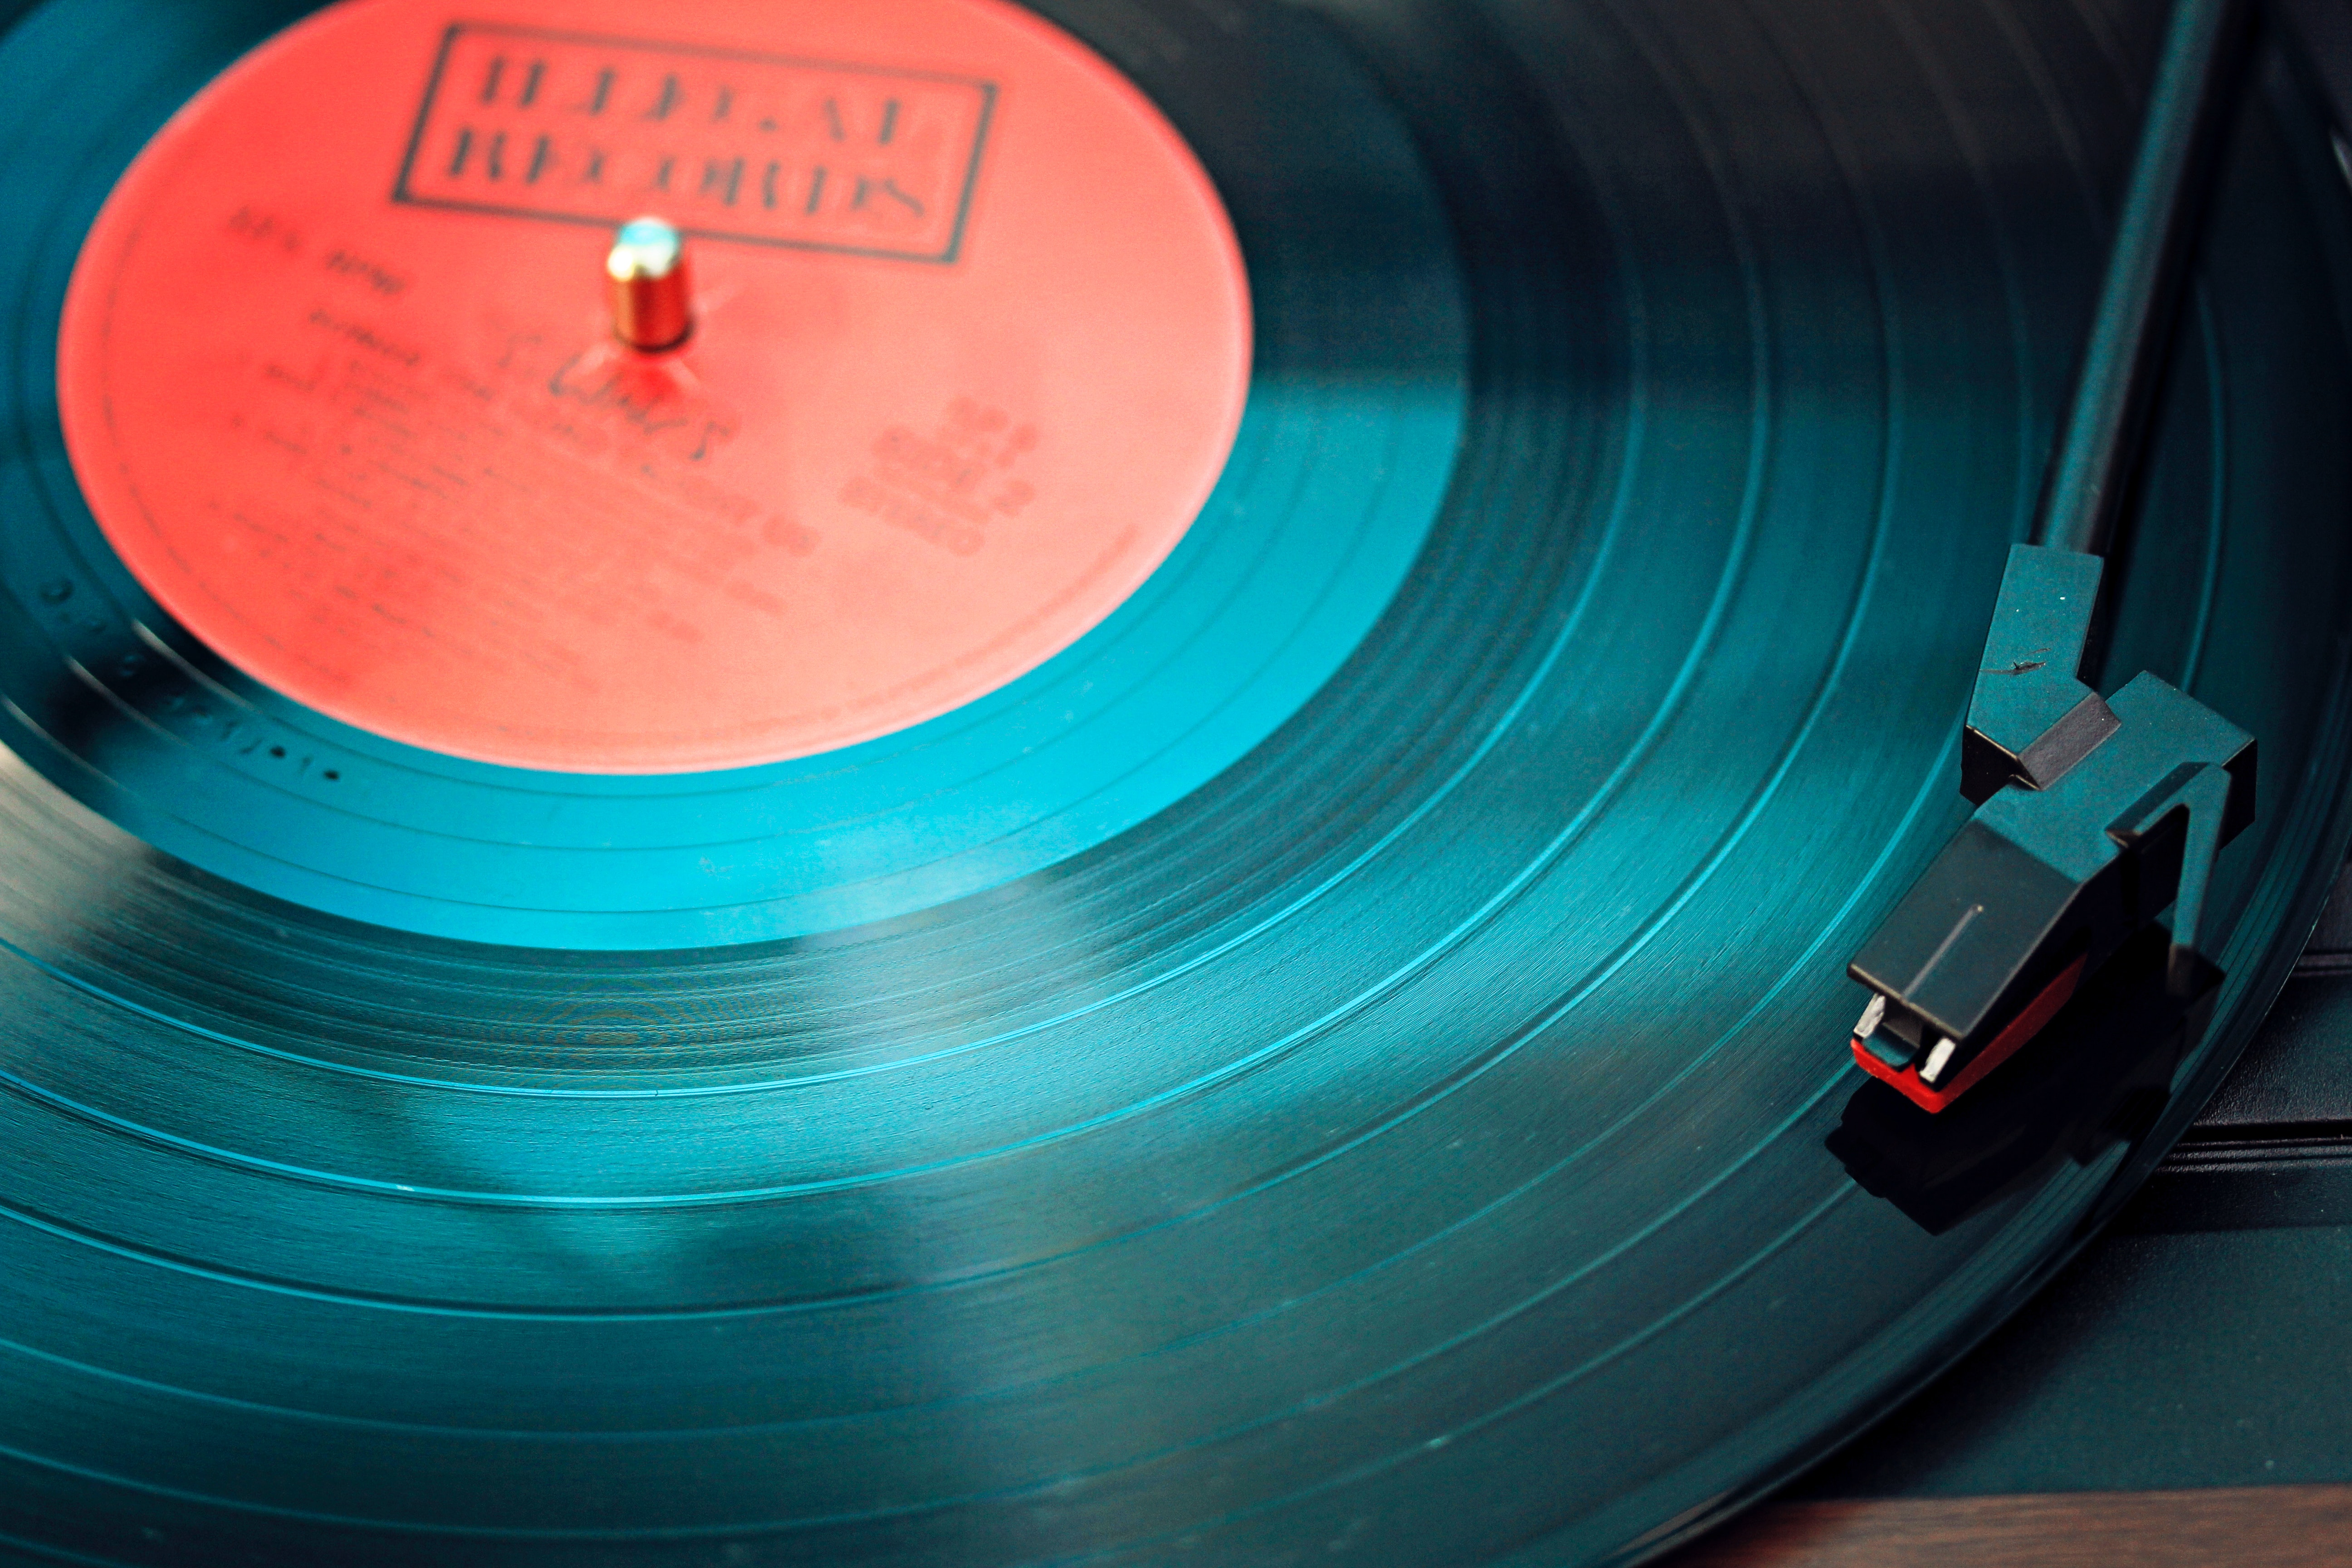 A closeup of record being played.